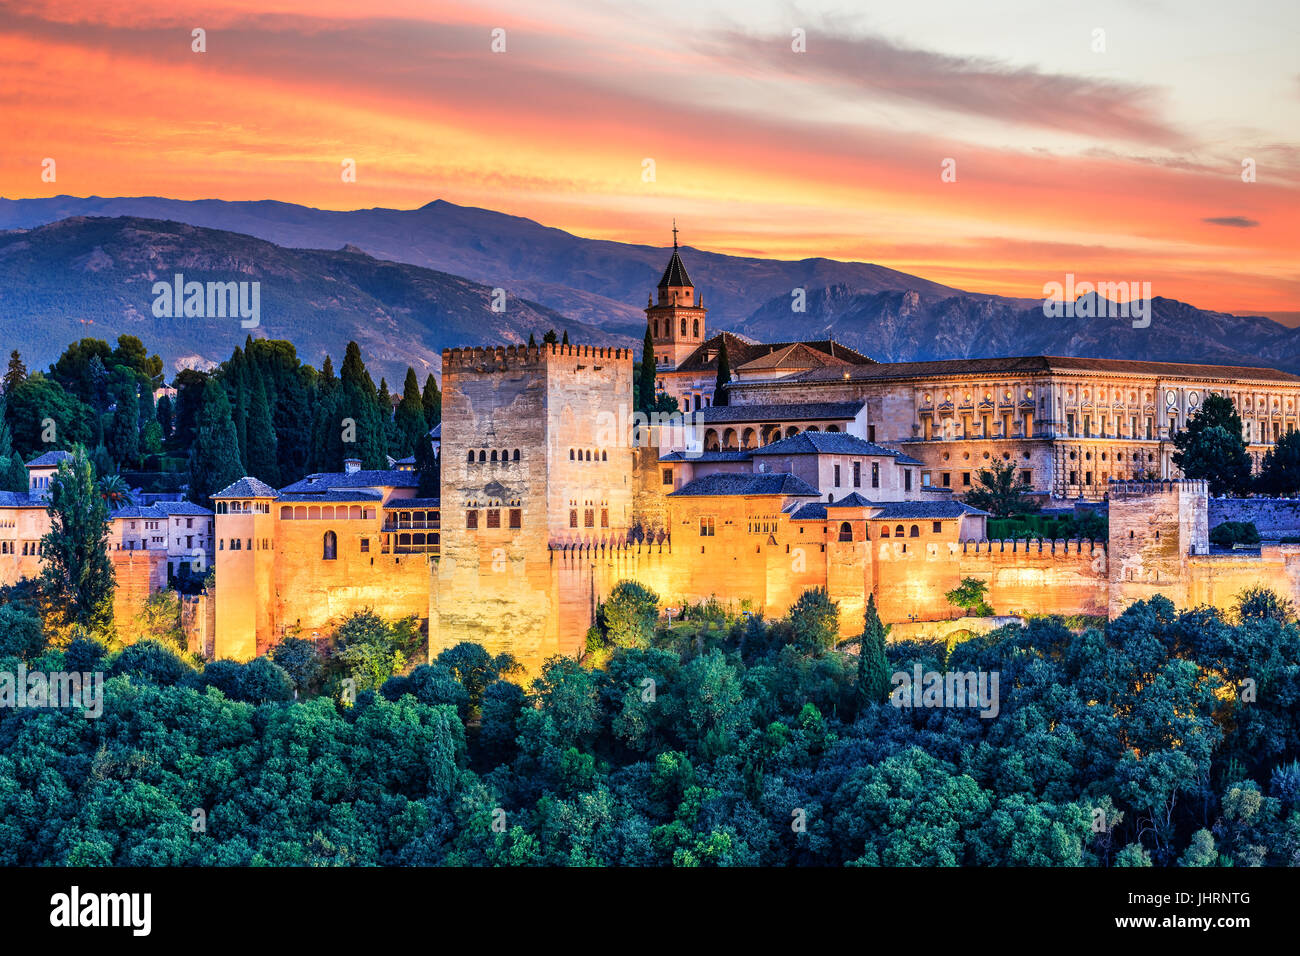 Alhambra of Granada, Spain. Alhambra fortress at sunset. - Stock Image